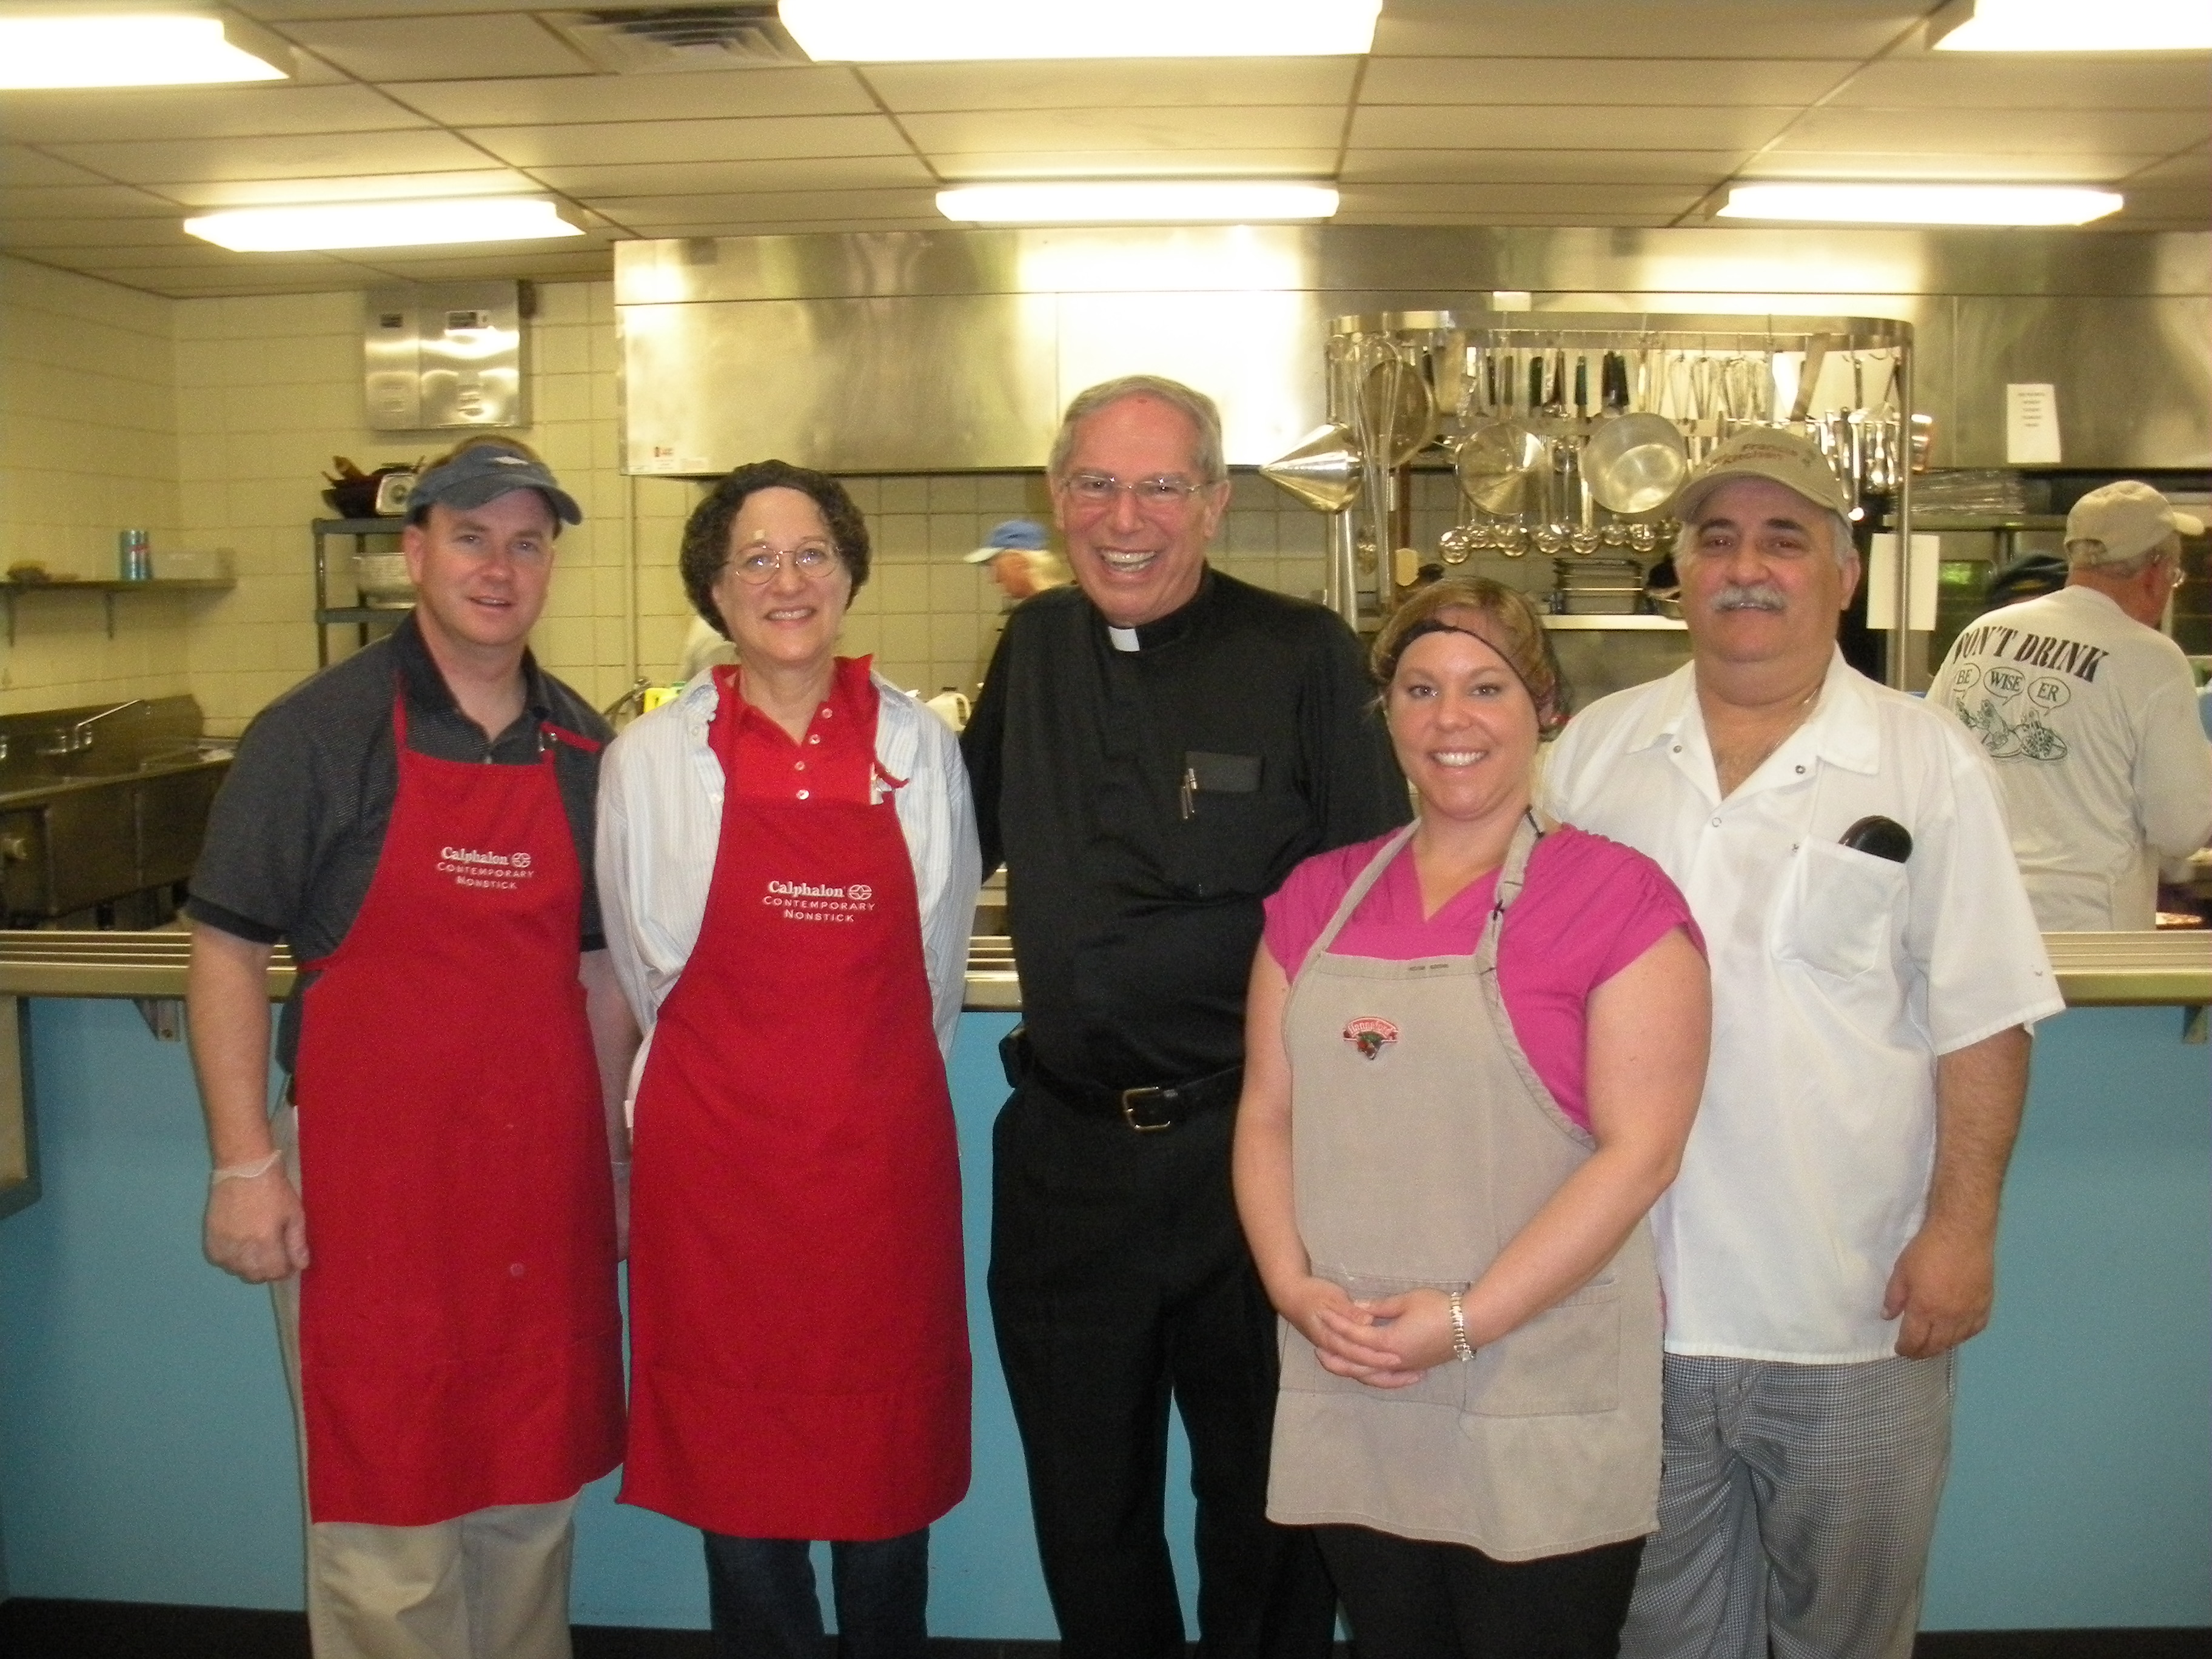 LPB board members and staff volunteer at St. Francis Kitchen